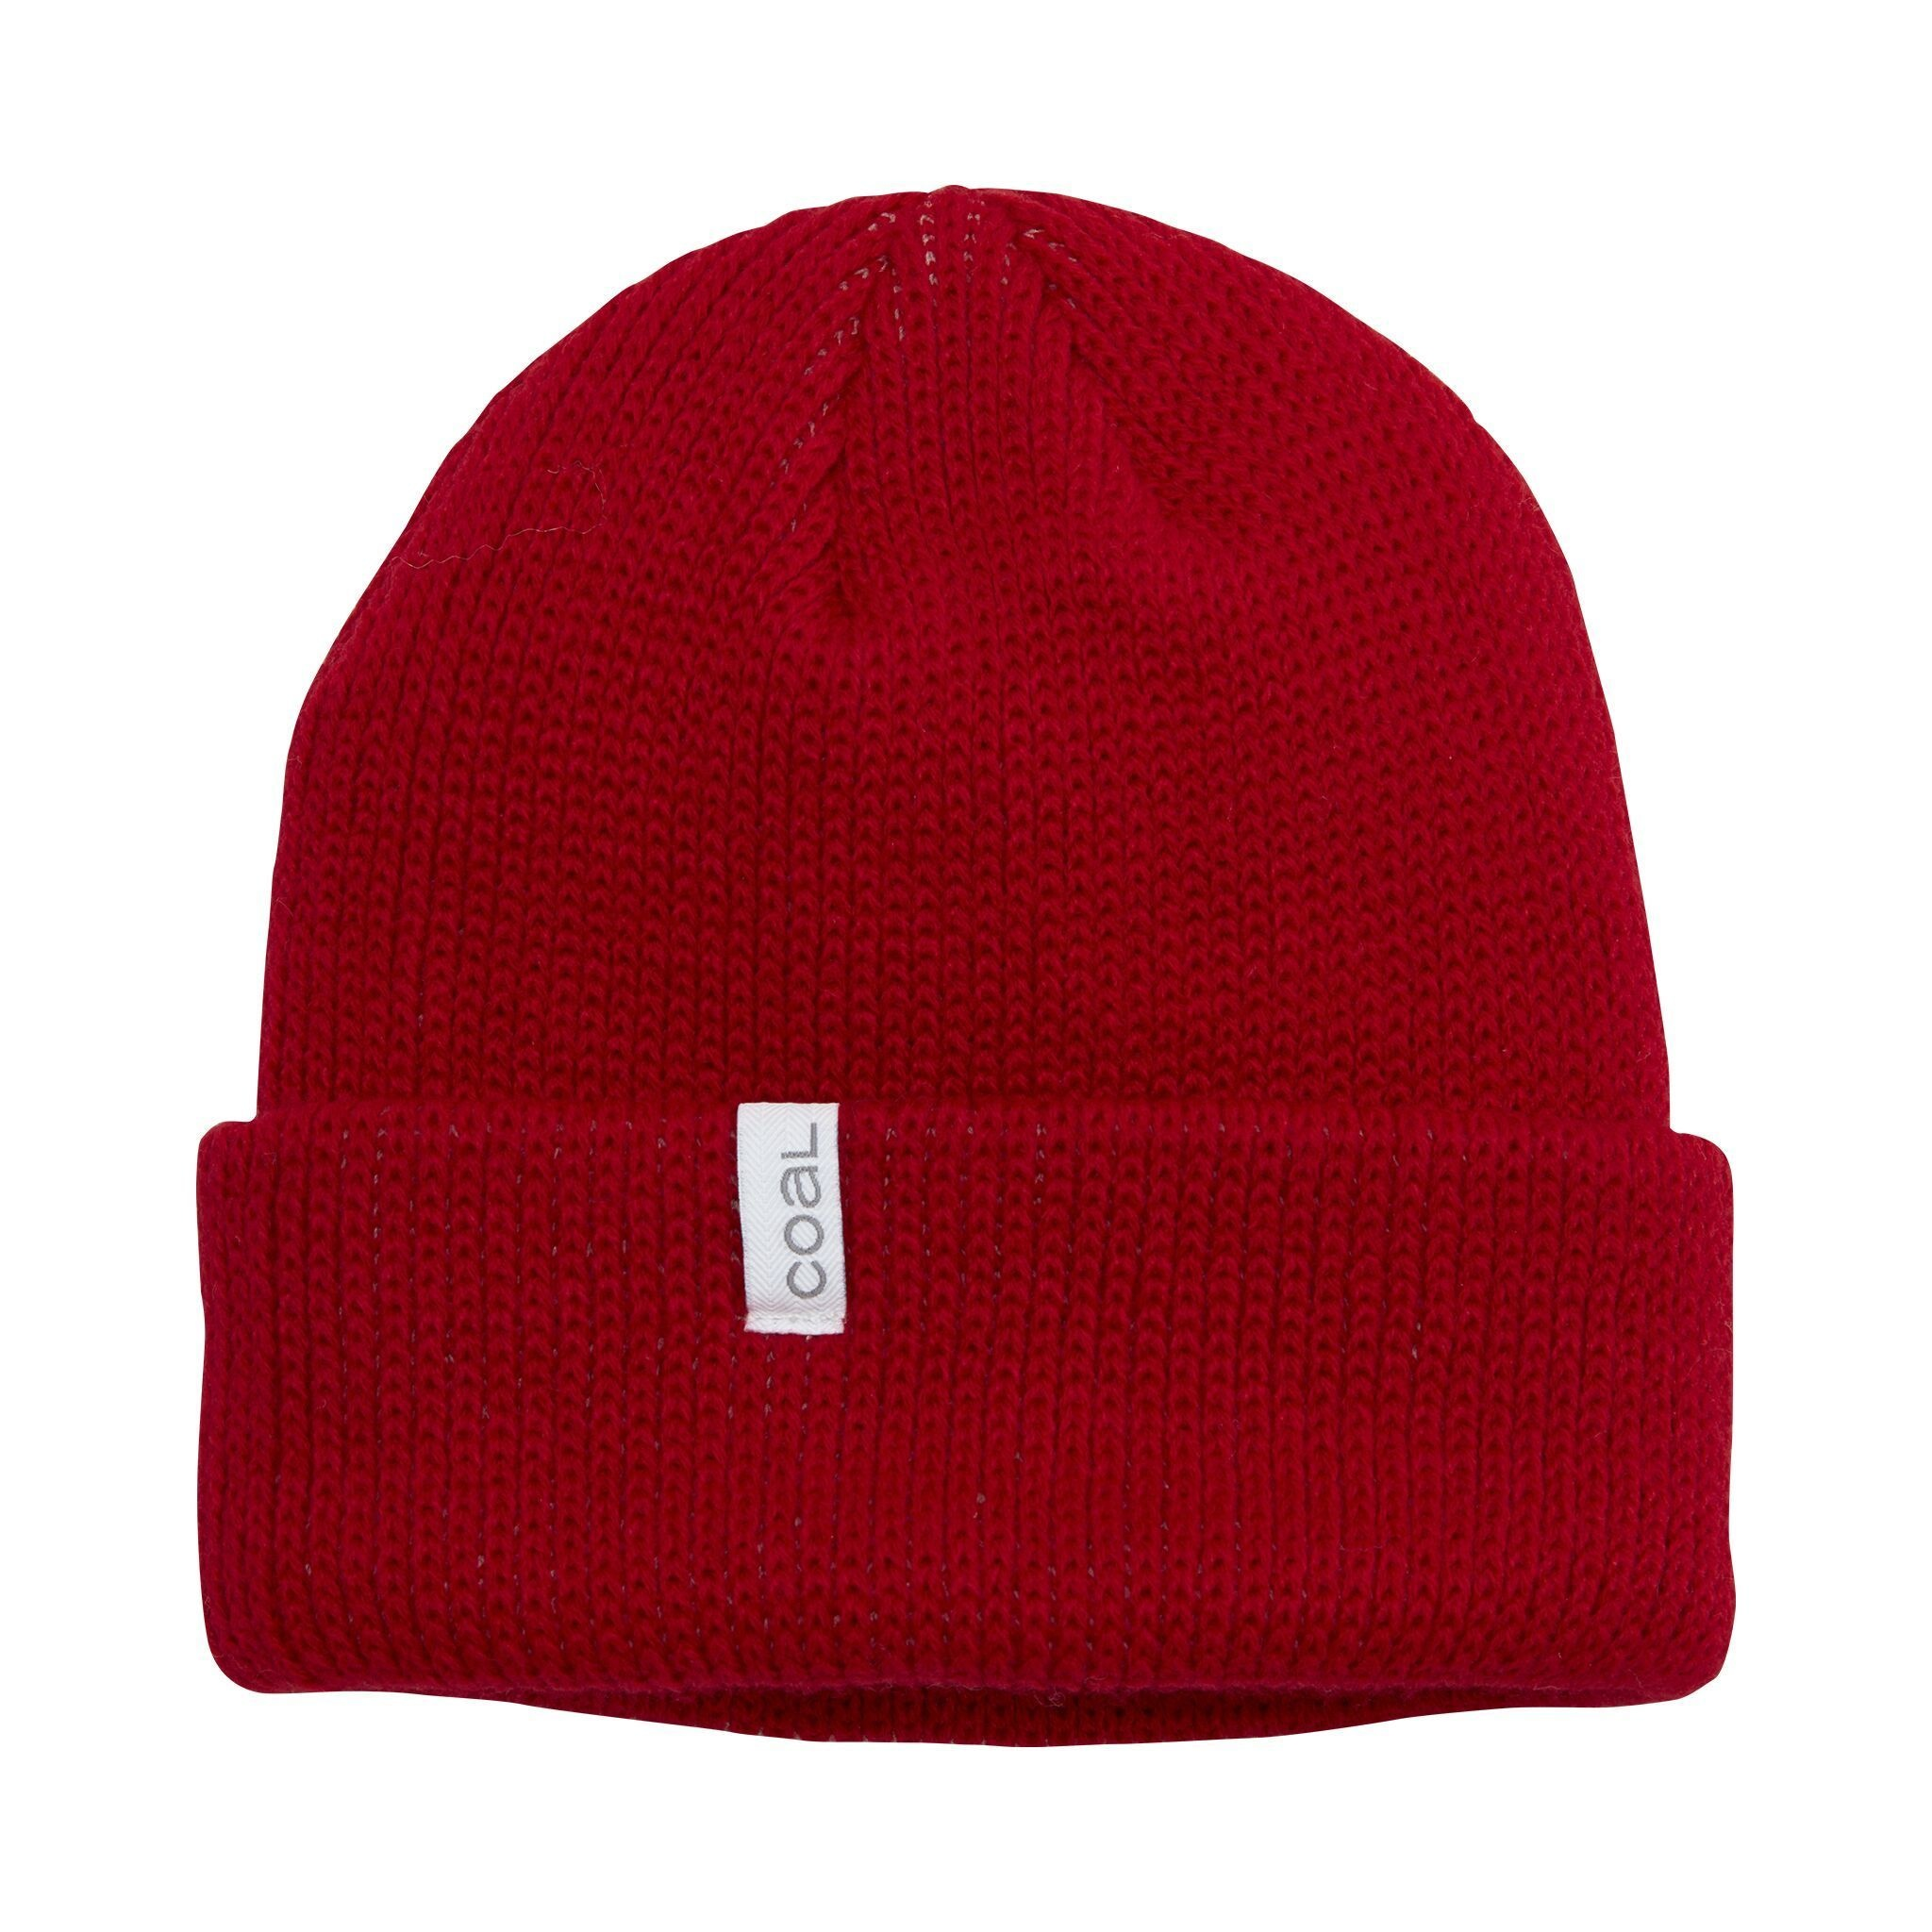 The Frena Red